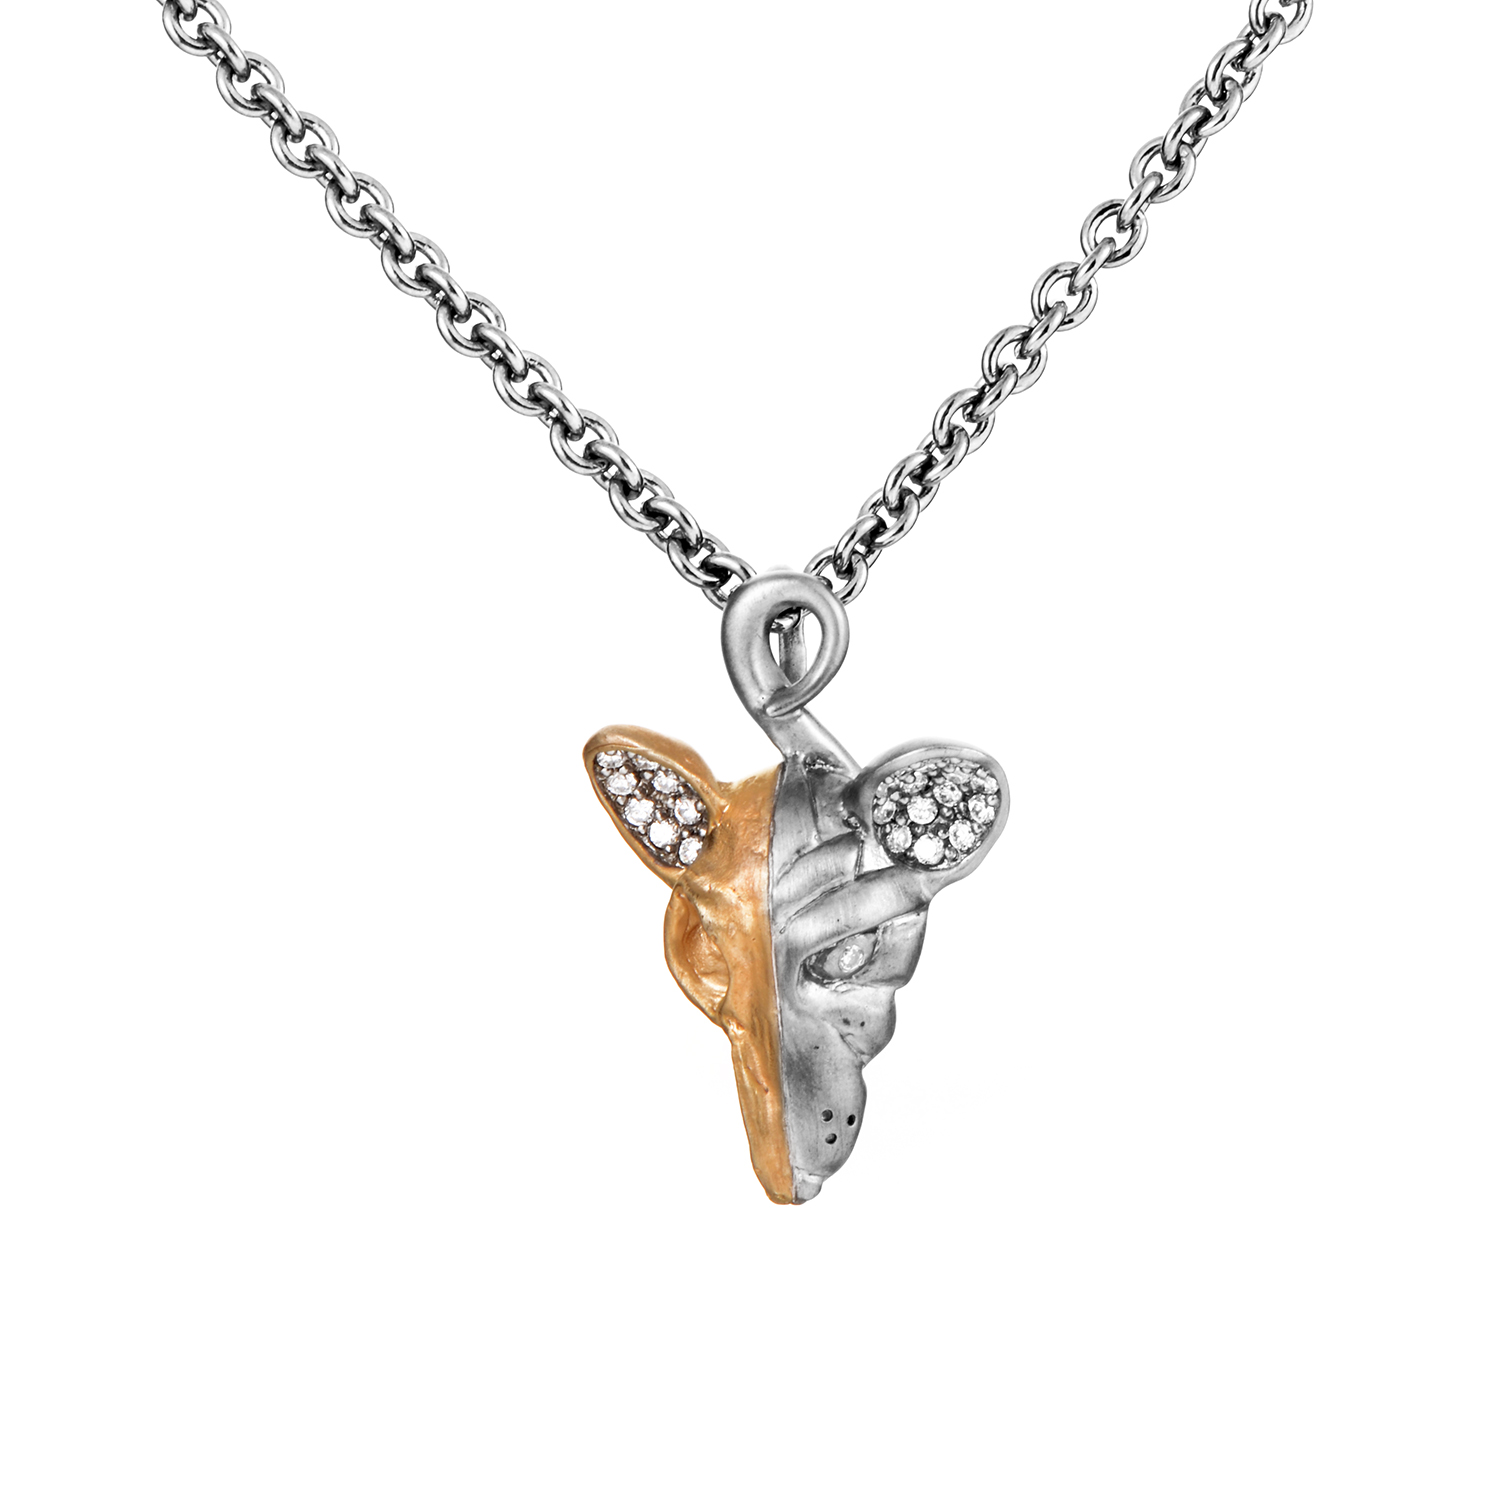 Gold Plated Silver & CZ Rat Pendant Necklace